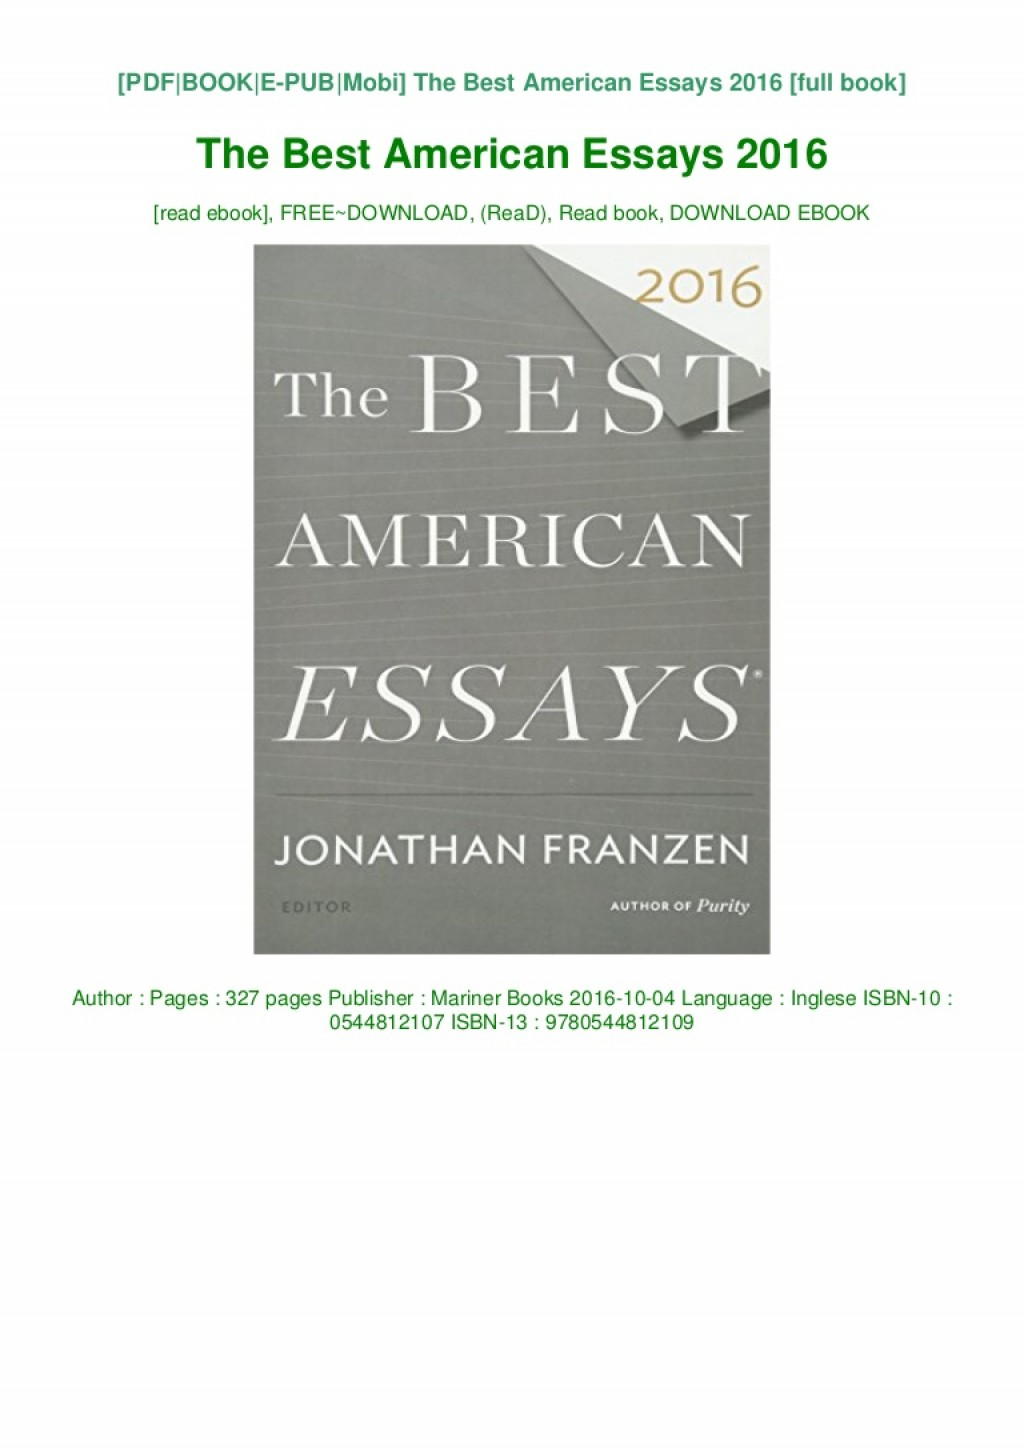 014 The Best American Essays Essay Example Download Pdf Epub Audiobook Ebook Thumbnail Wonderful 2018 List 2017 Free Large